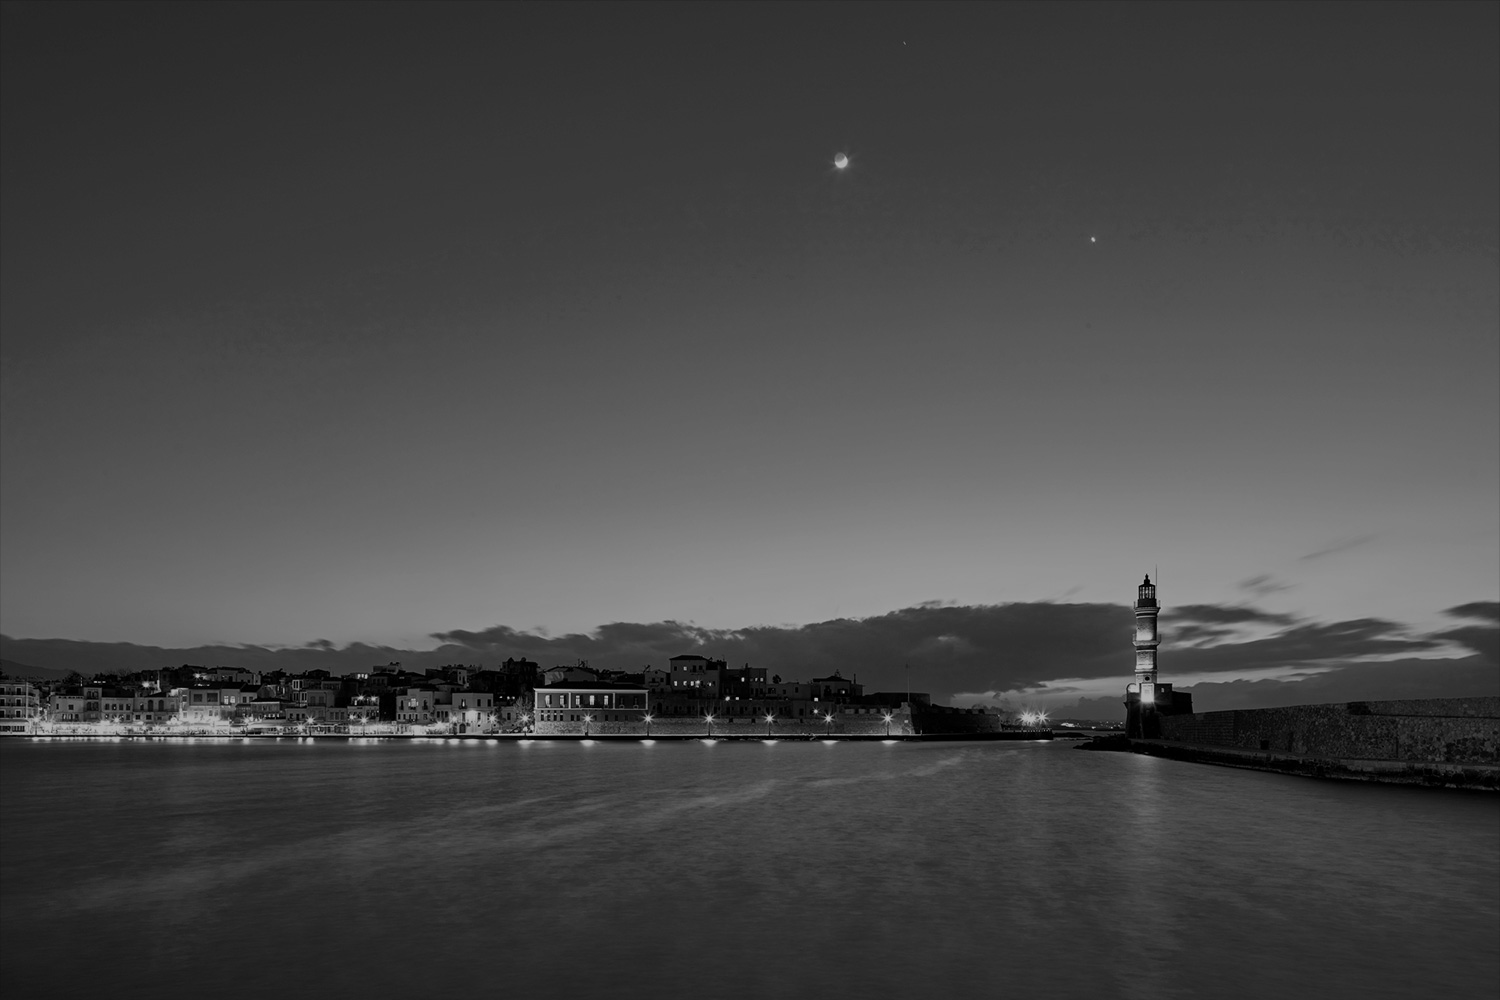 black and white image of chania at night